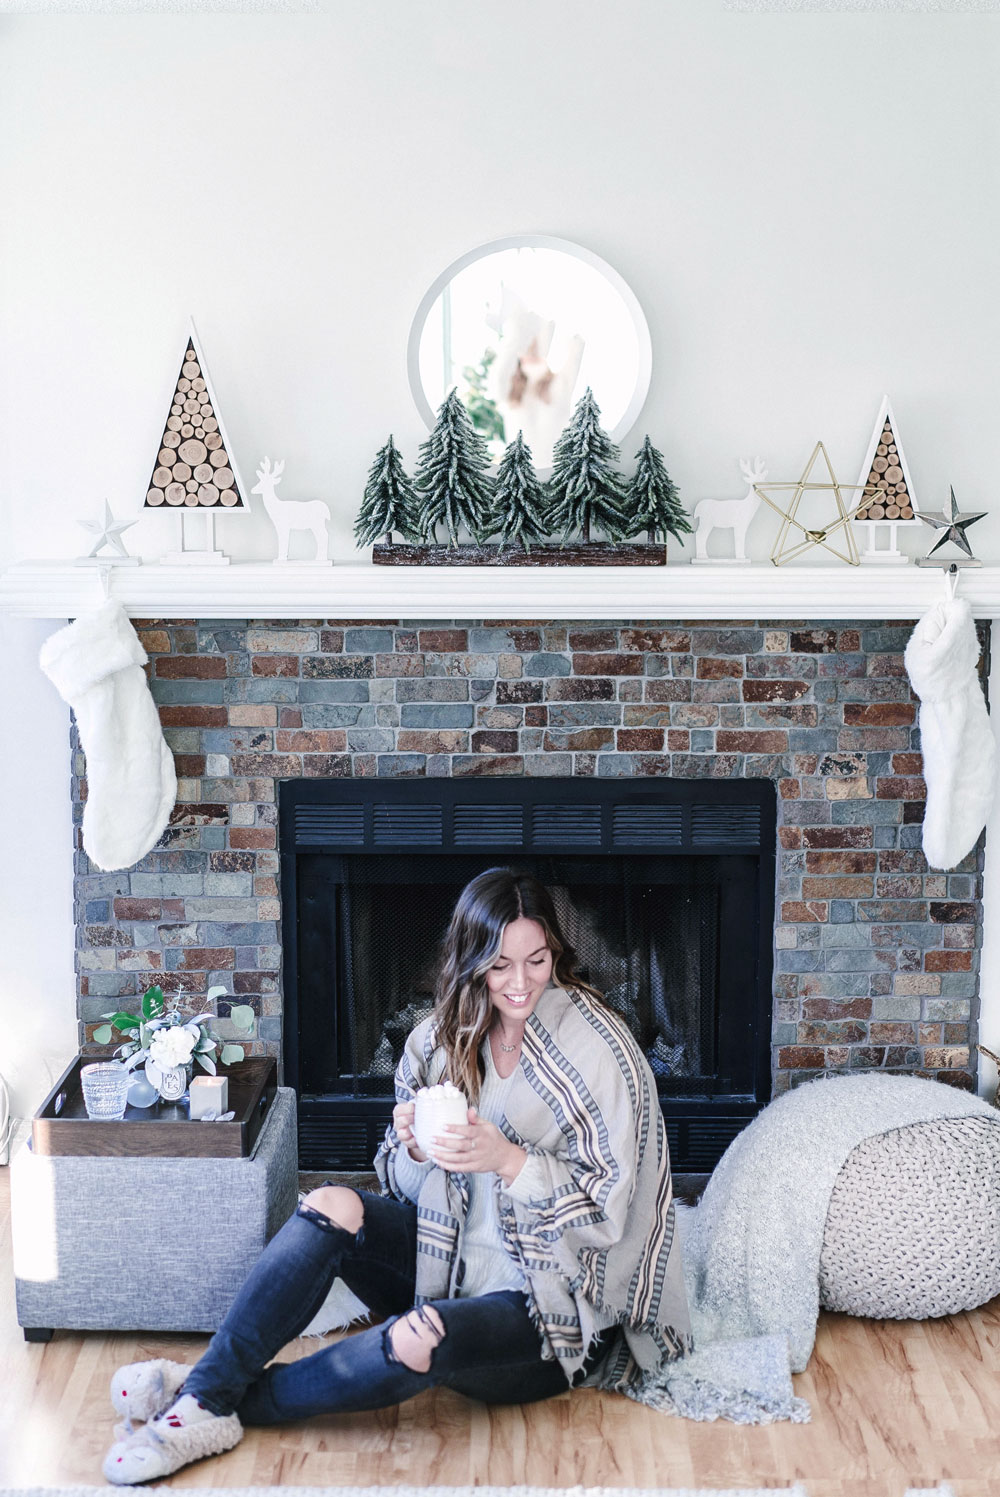 Urban barn holiday decor ideas by To Vogue or Bust